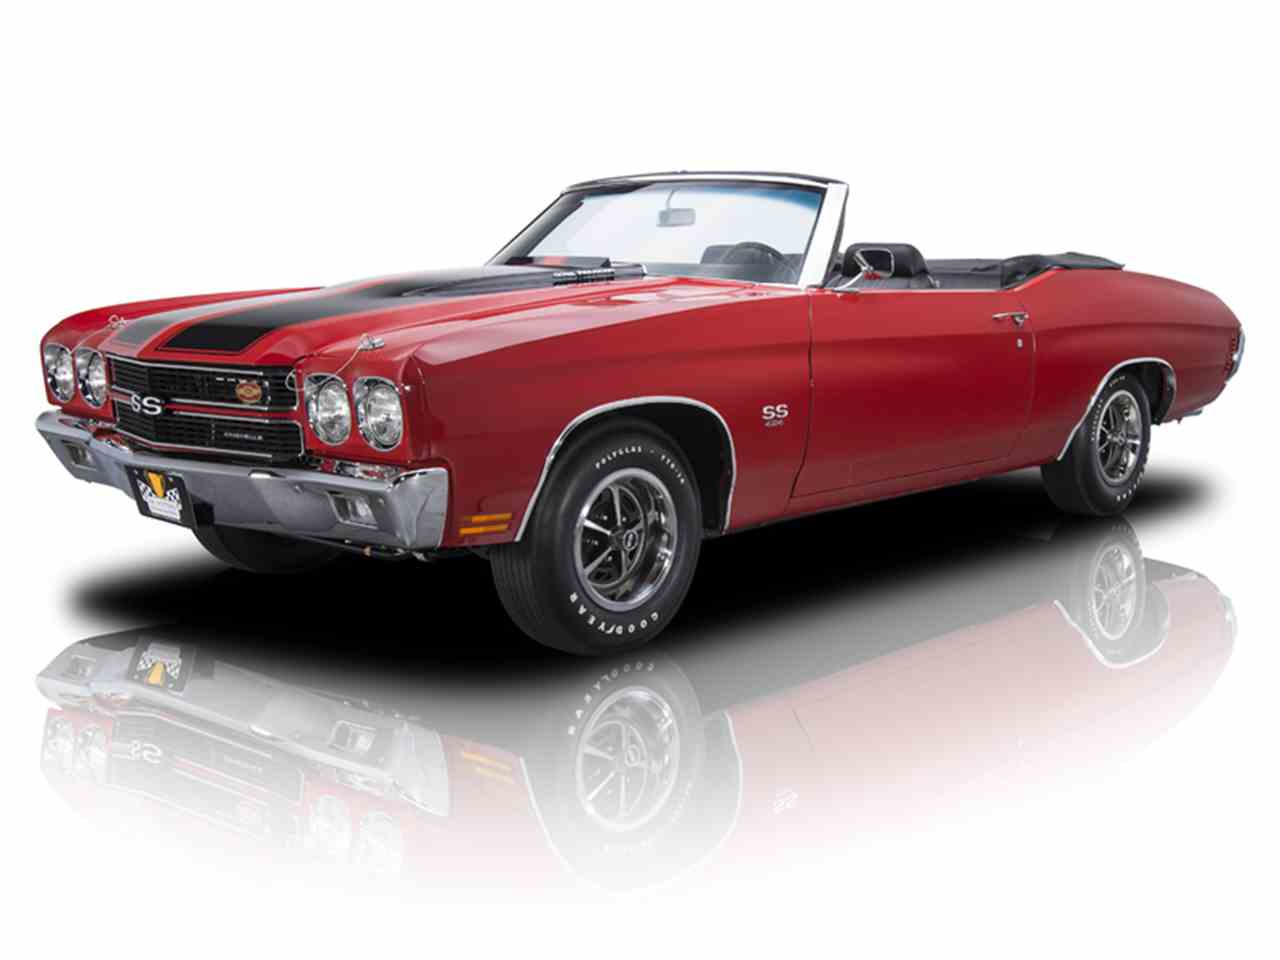 1970 Chevrolet Chevelle SS for Sale - CC-1017726